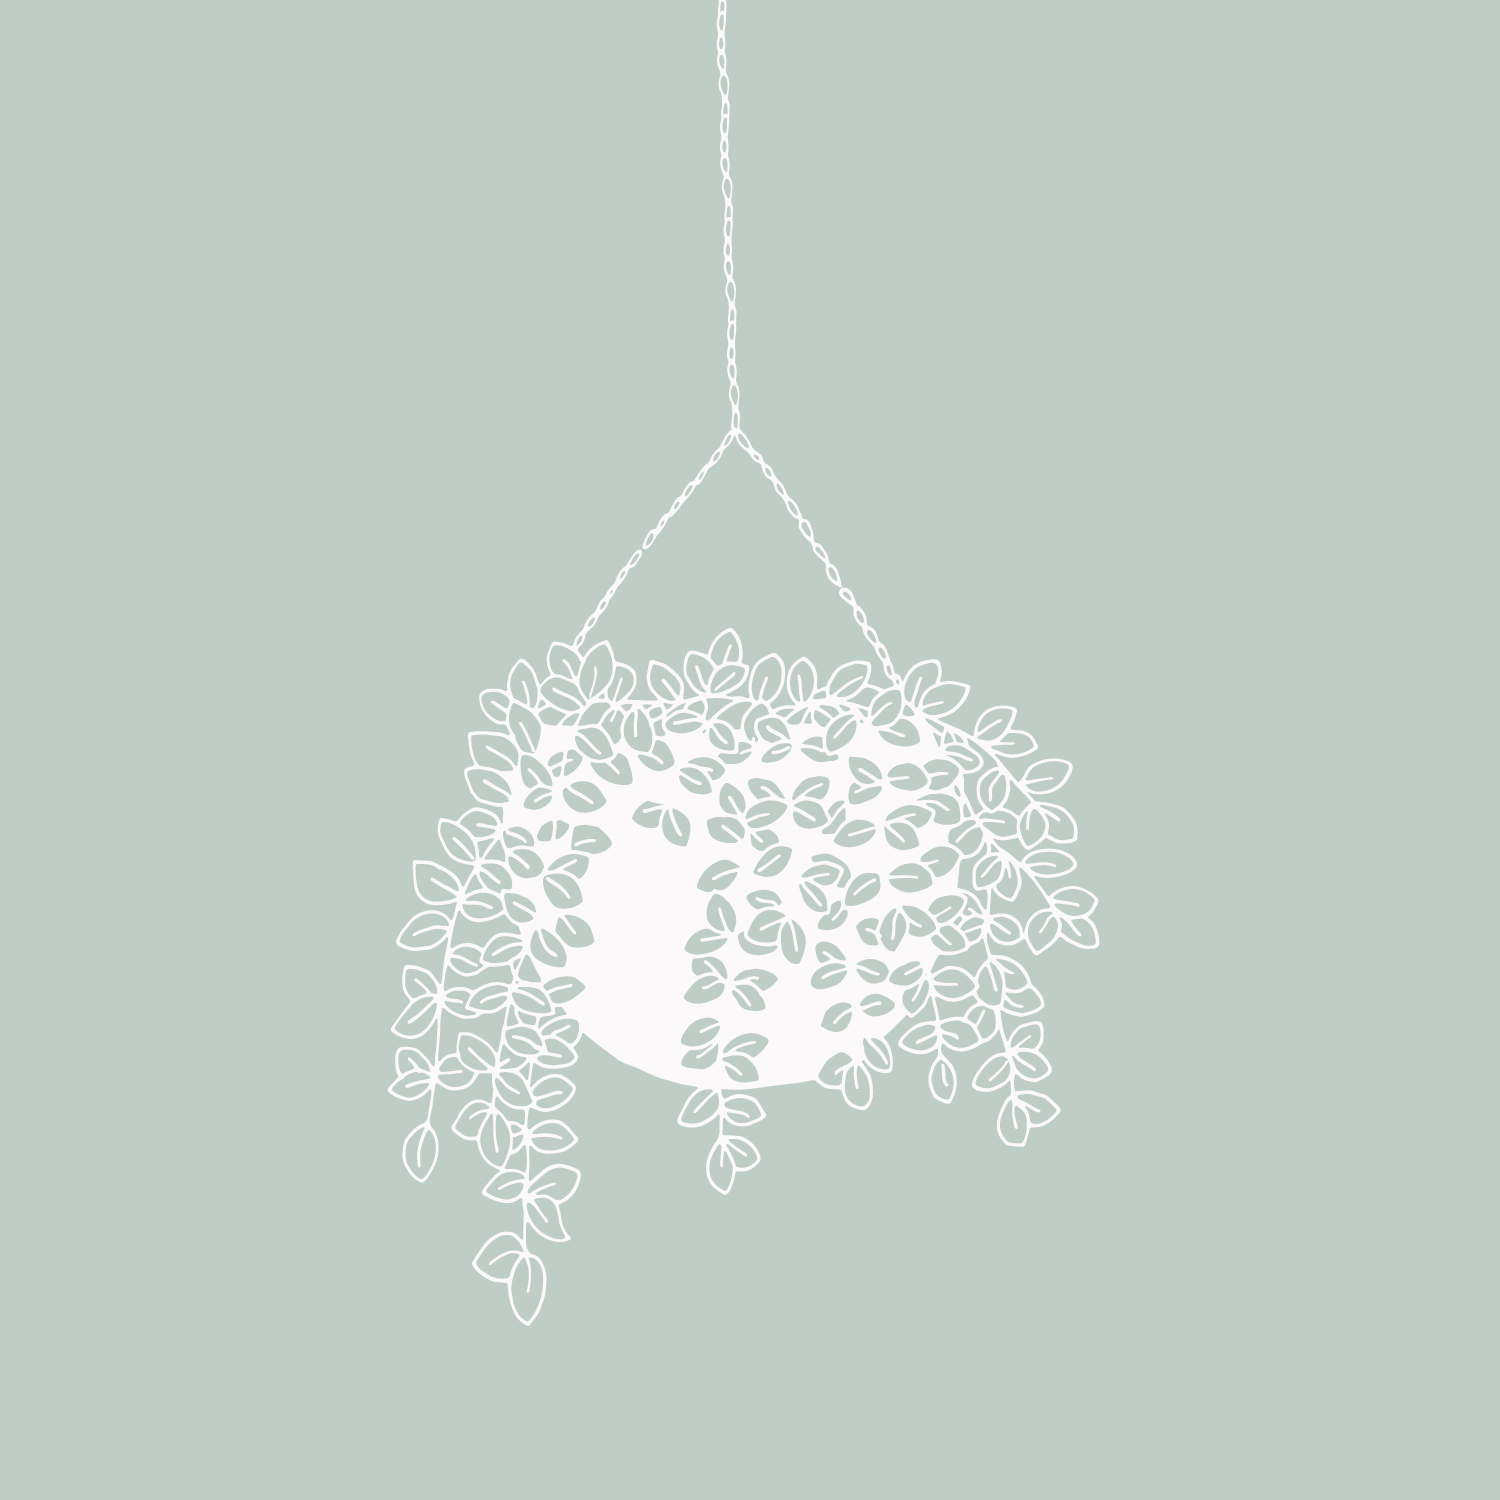 Hanging planter succulents illustration #the100dayproject by Bea & Bloom Creative Design Studio